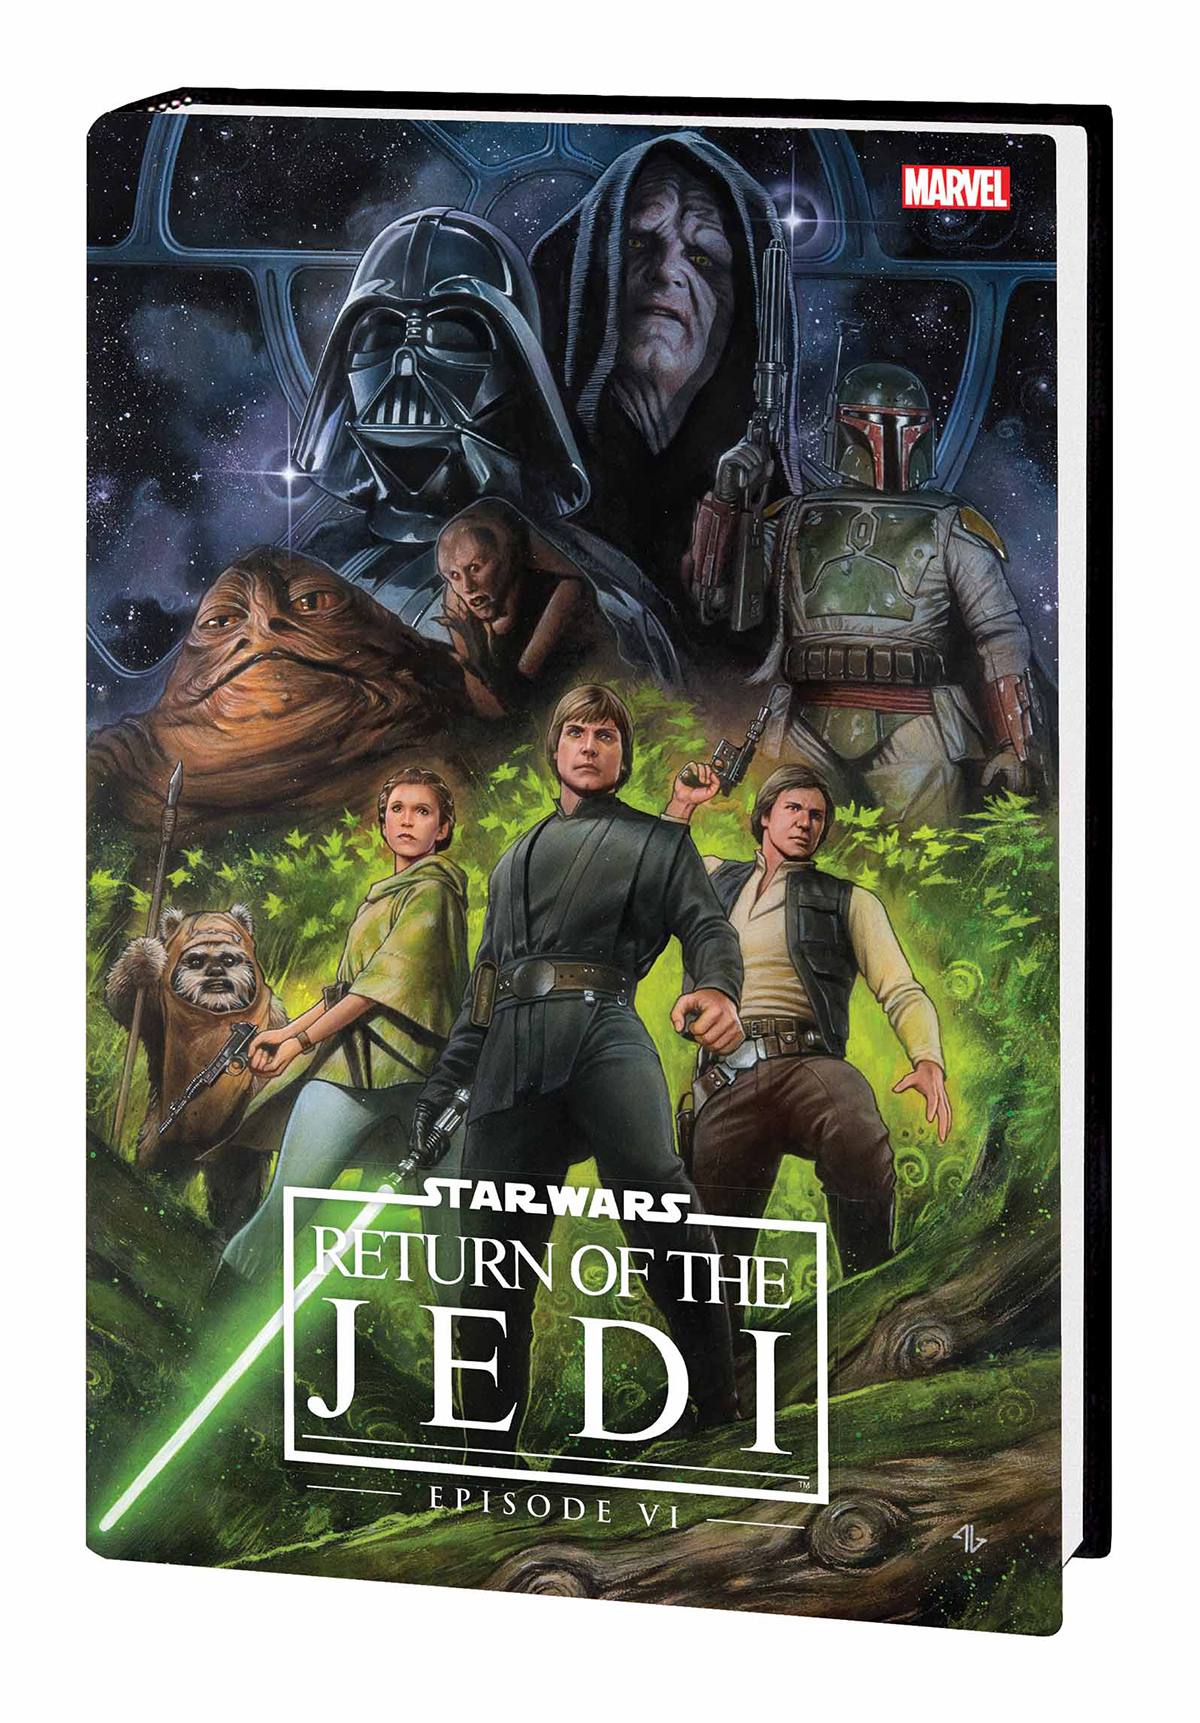 STAR WARS GN HC EPISODE VI RETURN OF JEDI